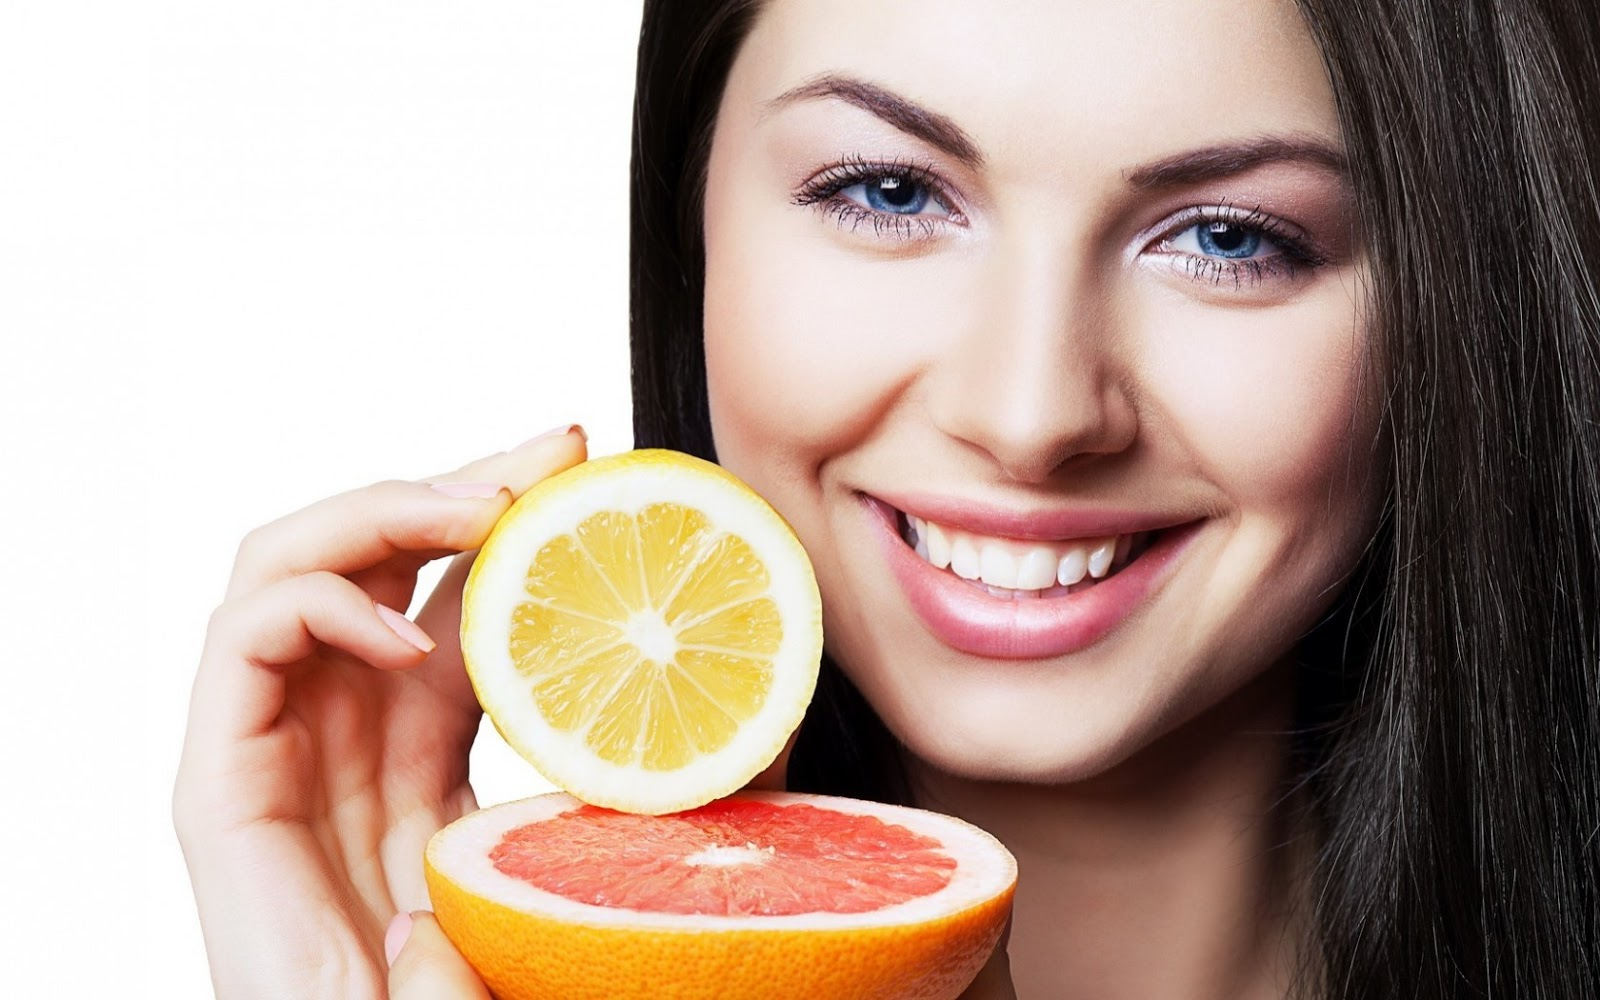 fruits-for-healthy-glowing-skin-frut-msk-for-instant-fairness-2-gpindiya.blogspot-in